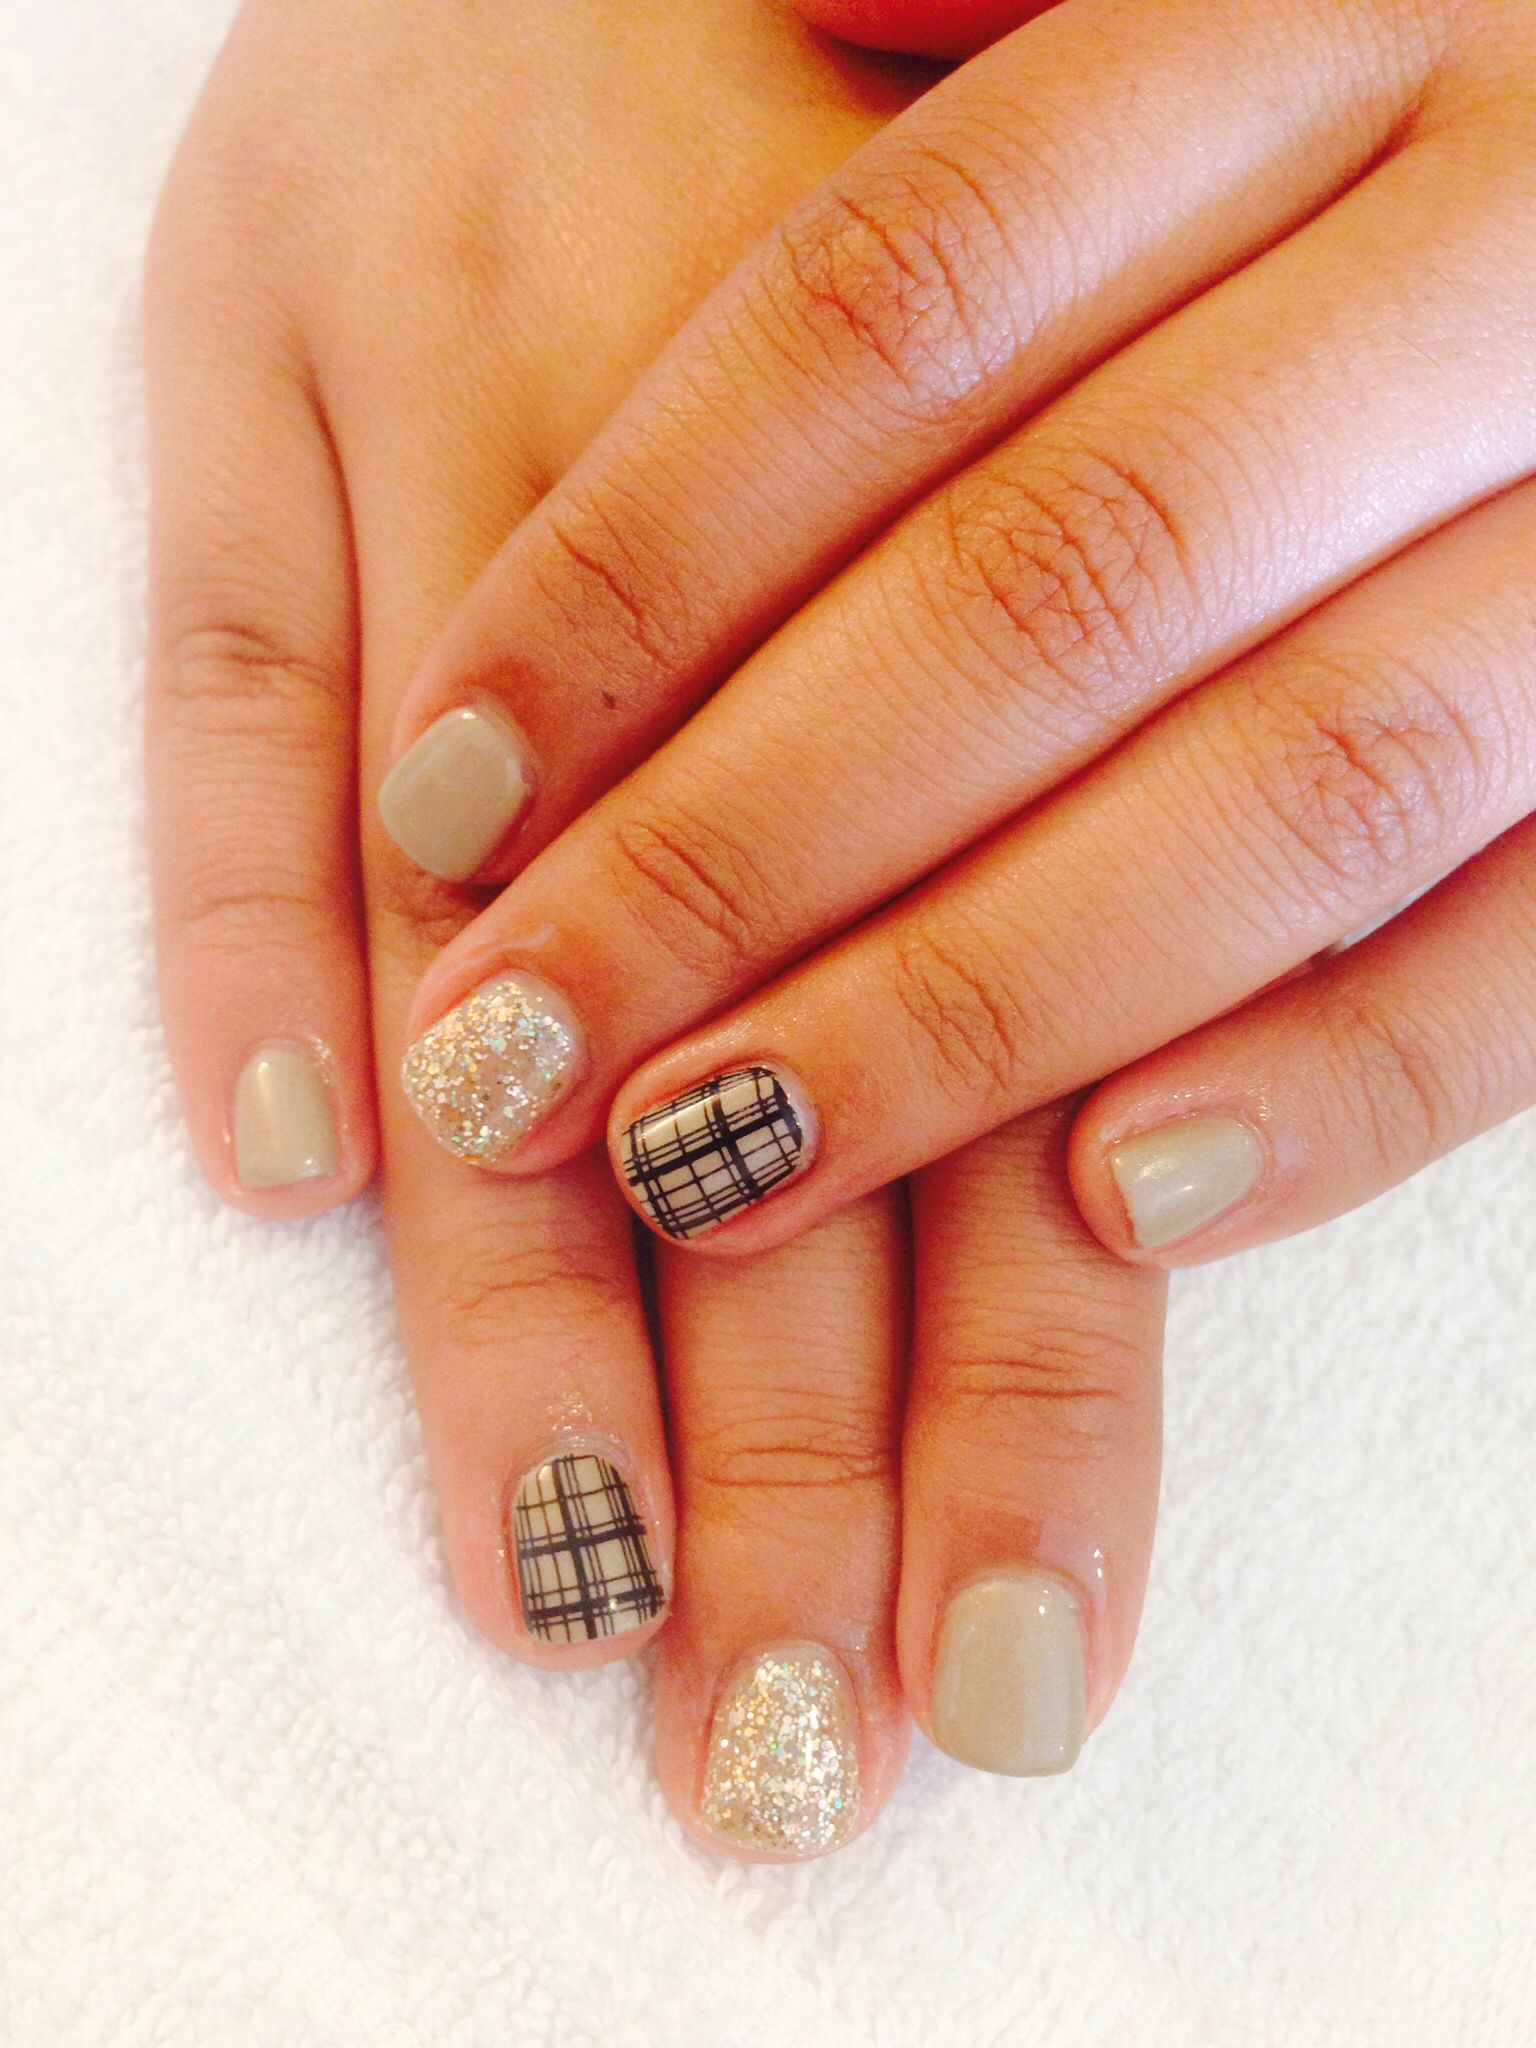 Satin taupe plaid nails! #gelish #tan #glitter perfect for fall ...